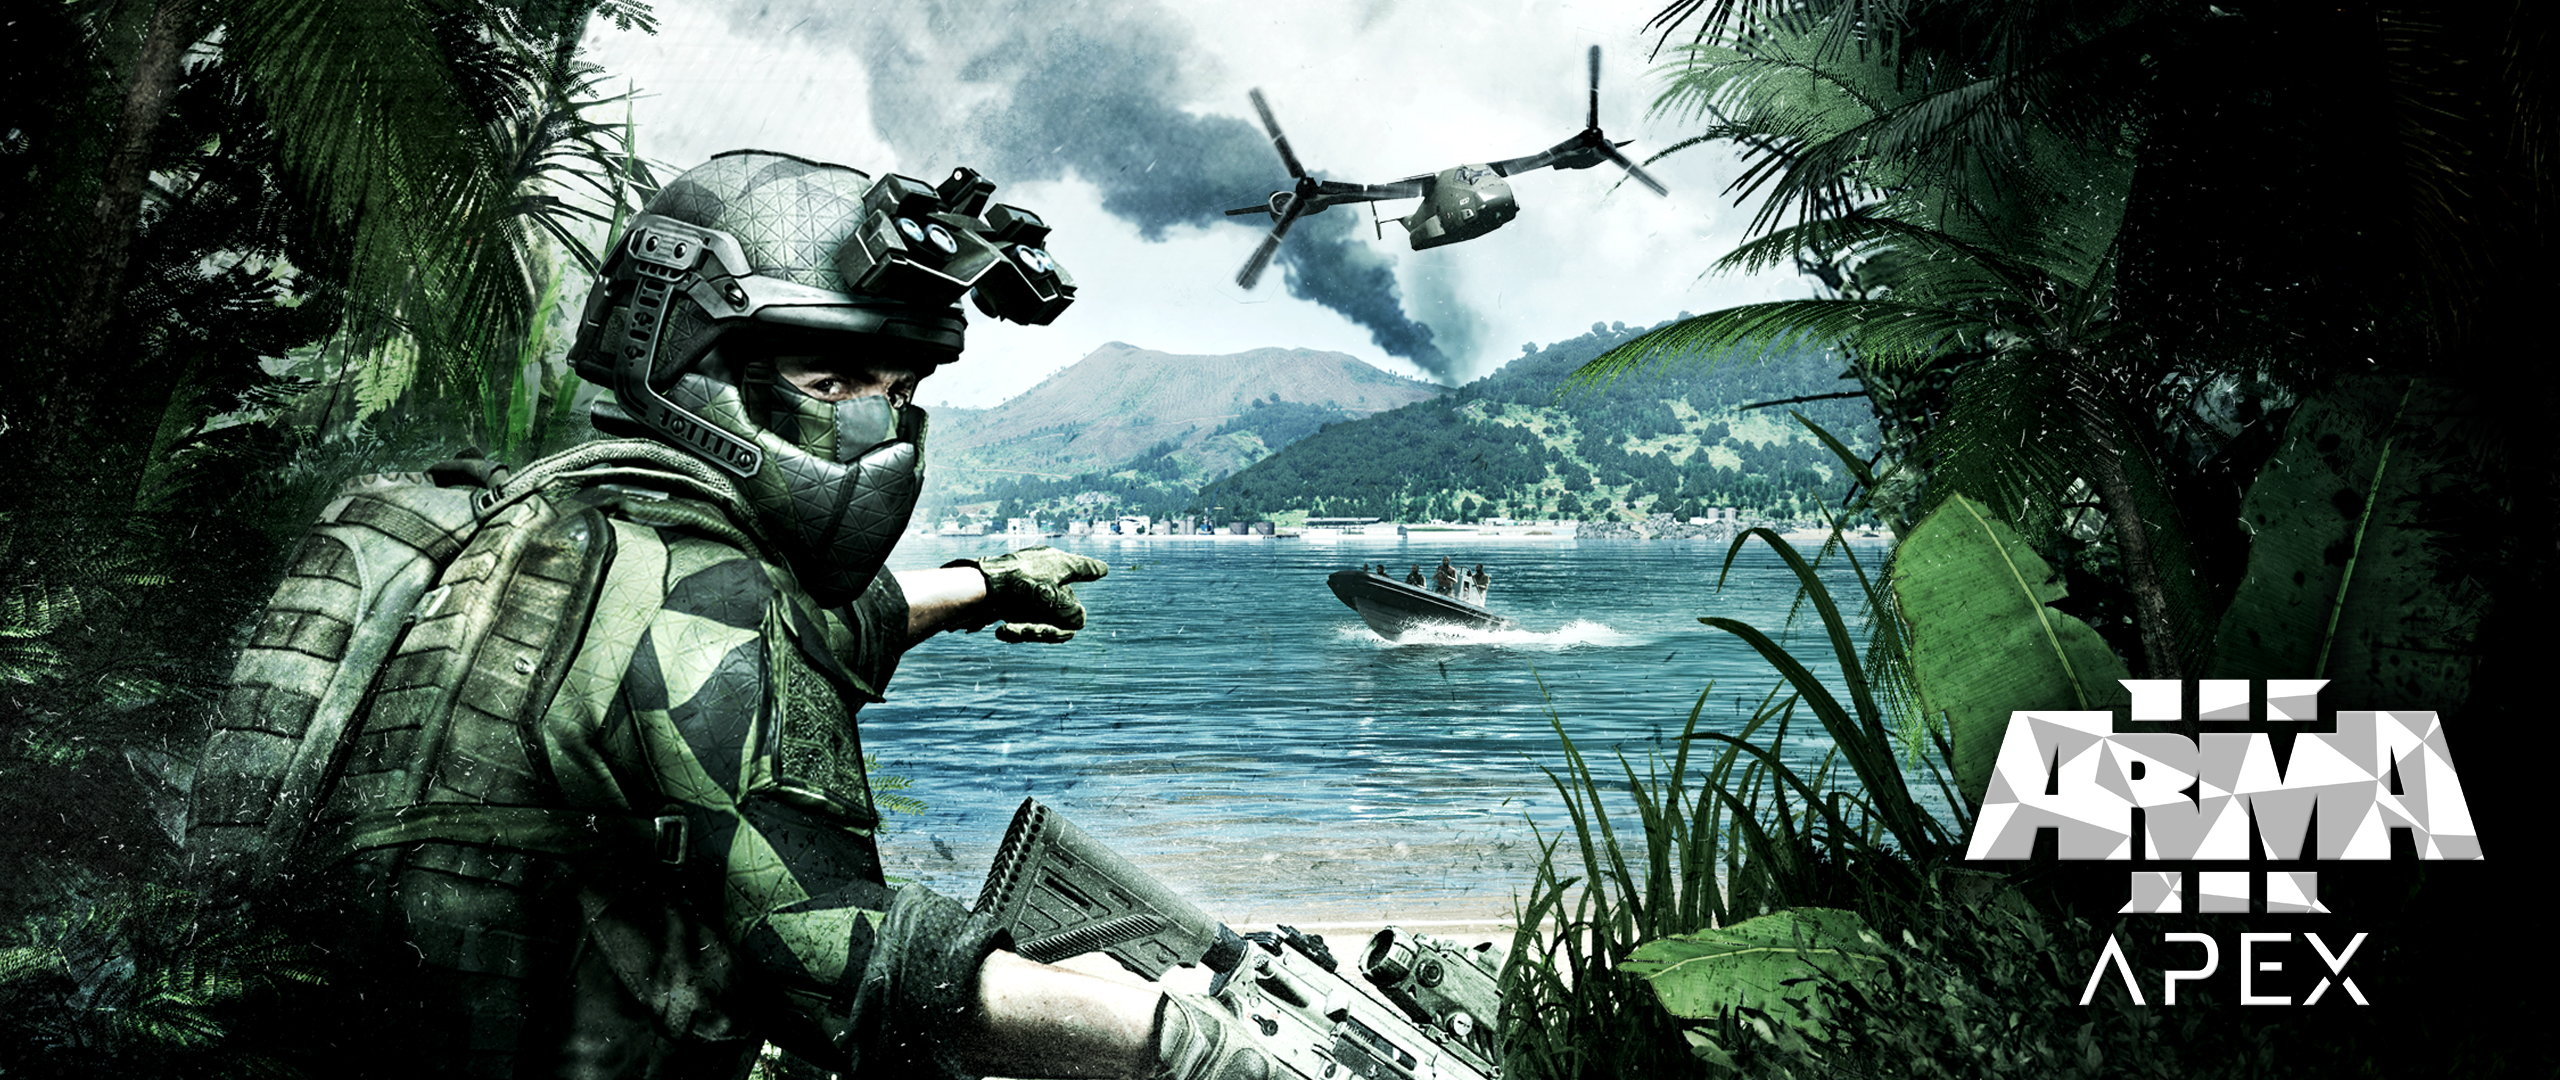 arma 3 wallpaper 1600x900 games wallpapers arma 3 pictures